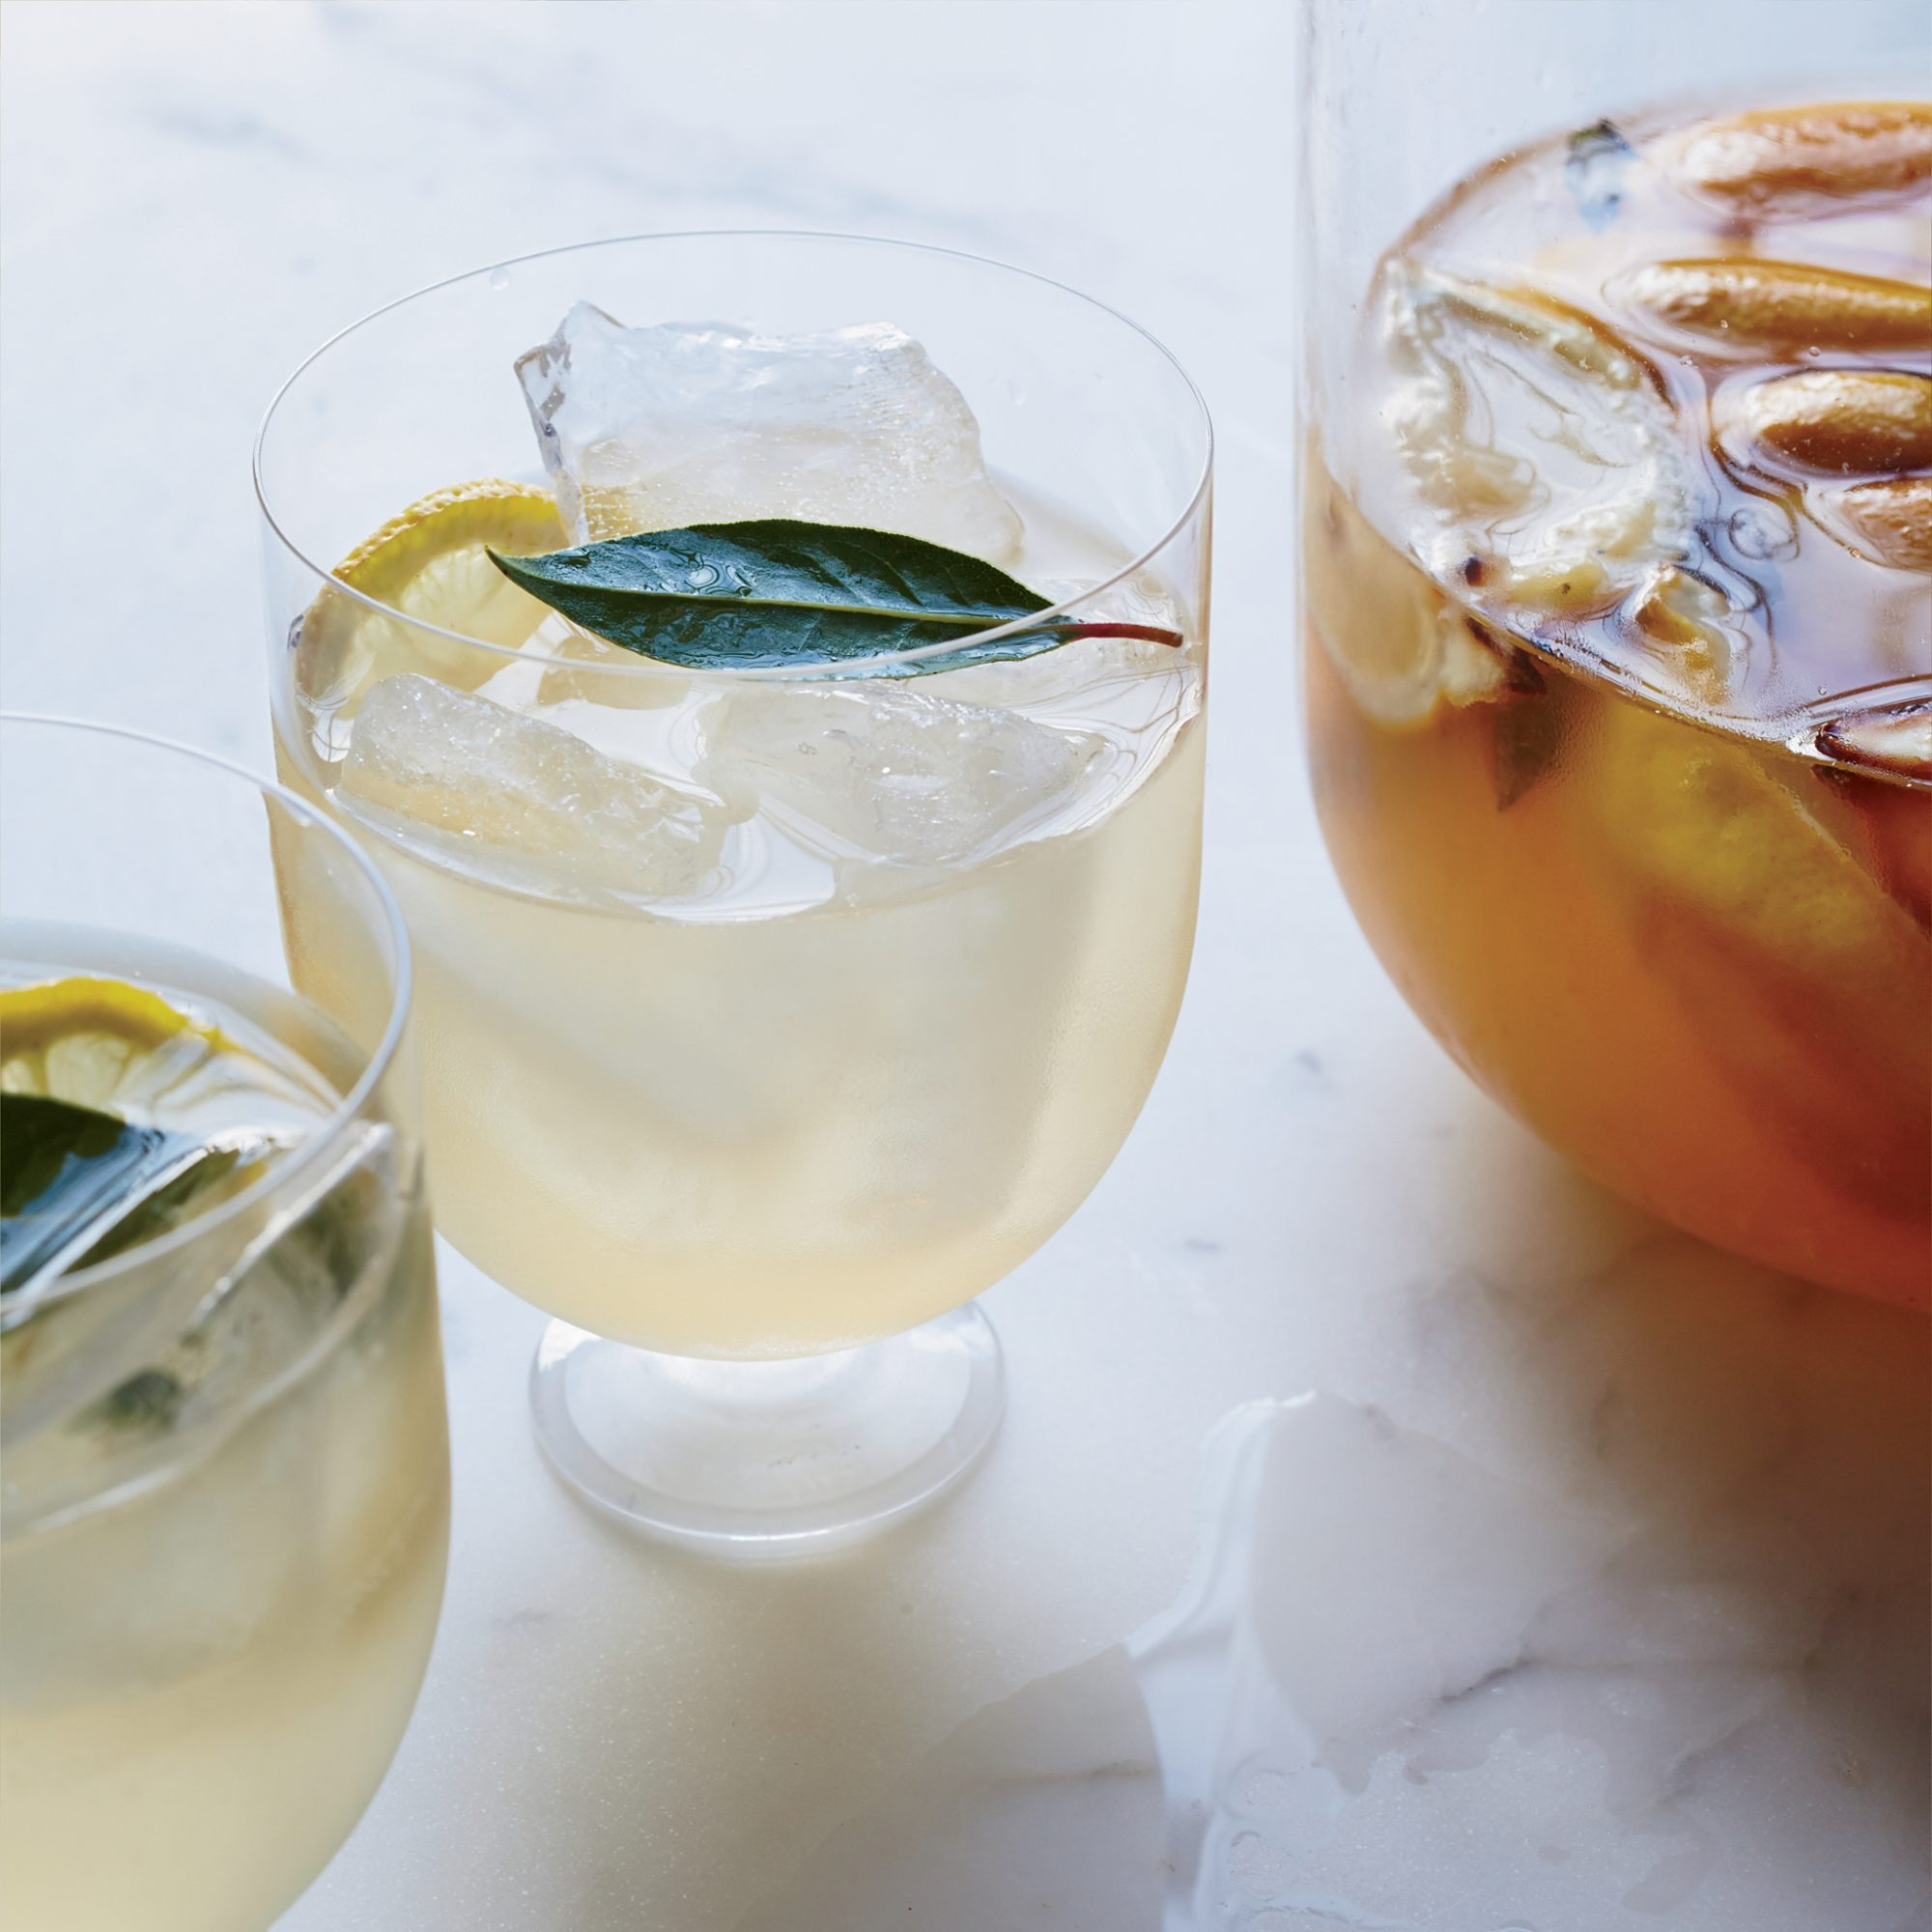 Roasted Lemon and Bay Leaf Hard Lemonade